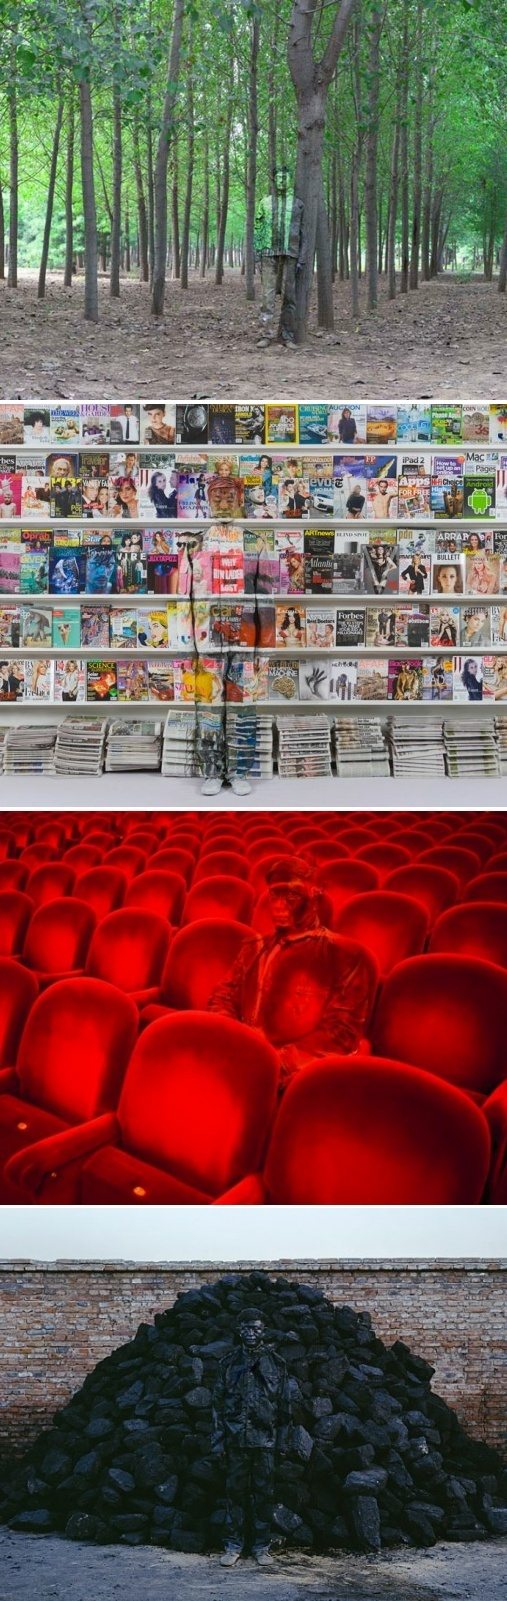 Liu Bolin: hidden people <-- does this make anyone else think of the end of Sherlock Holmes: A Game of Shadows?